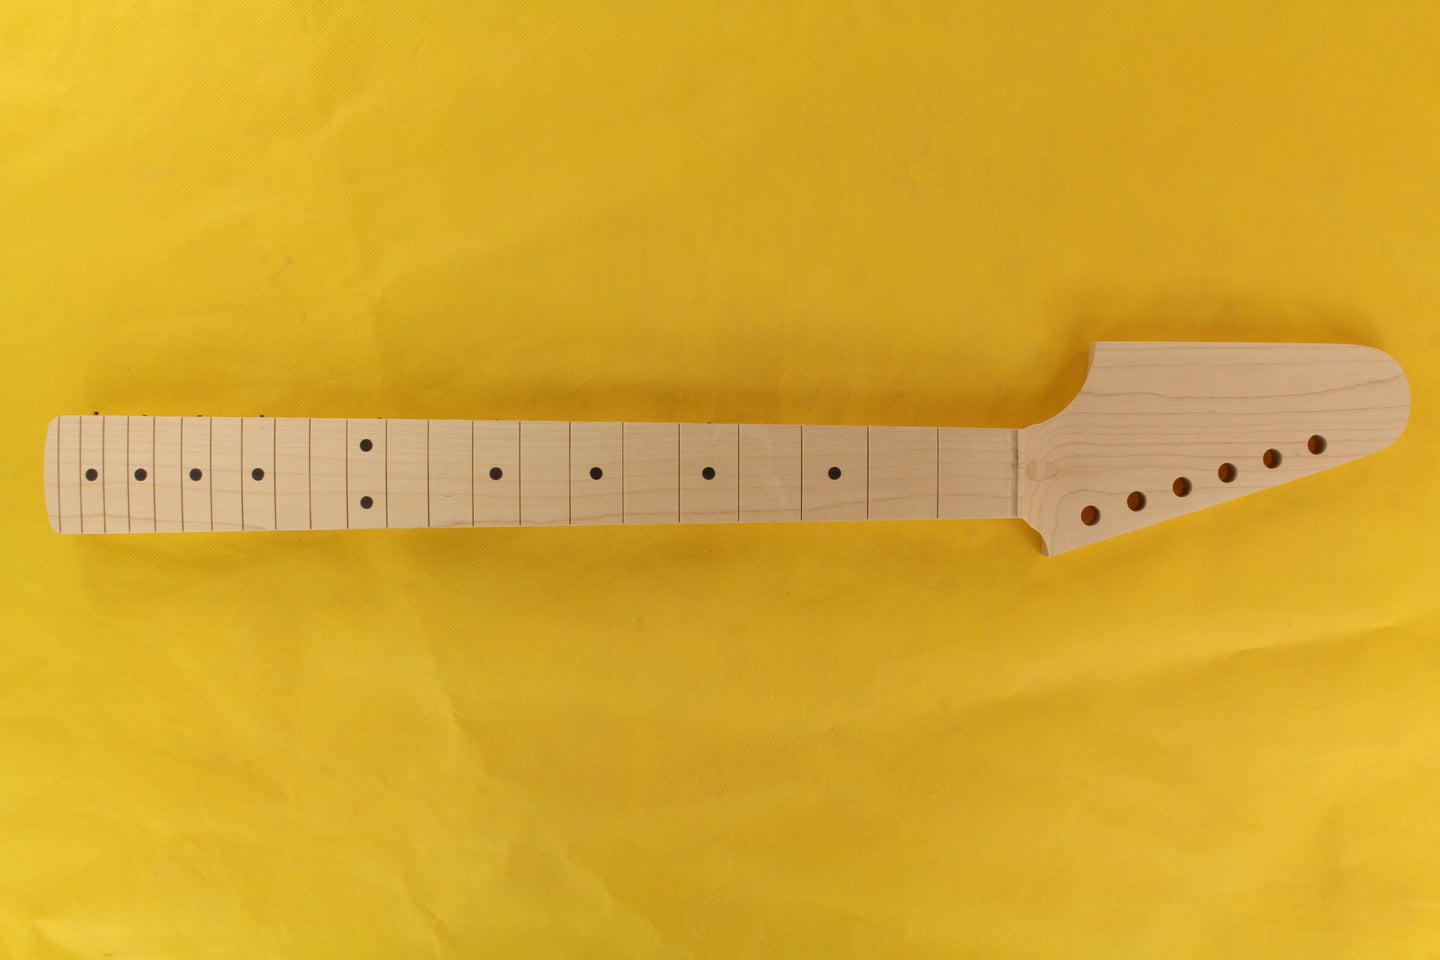 SC Maple Guitar Neck - 701549